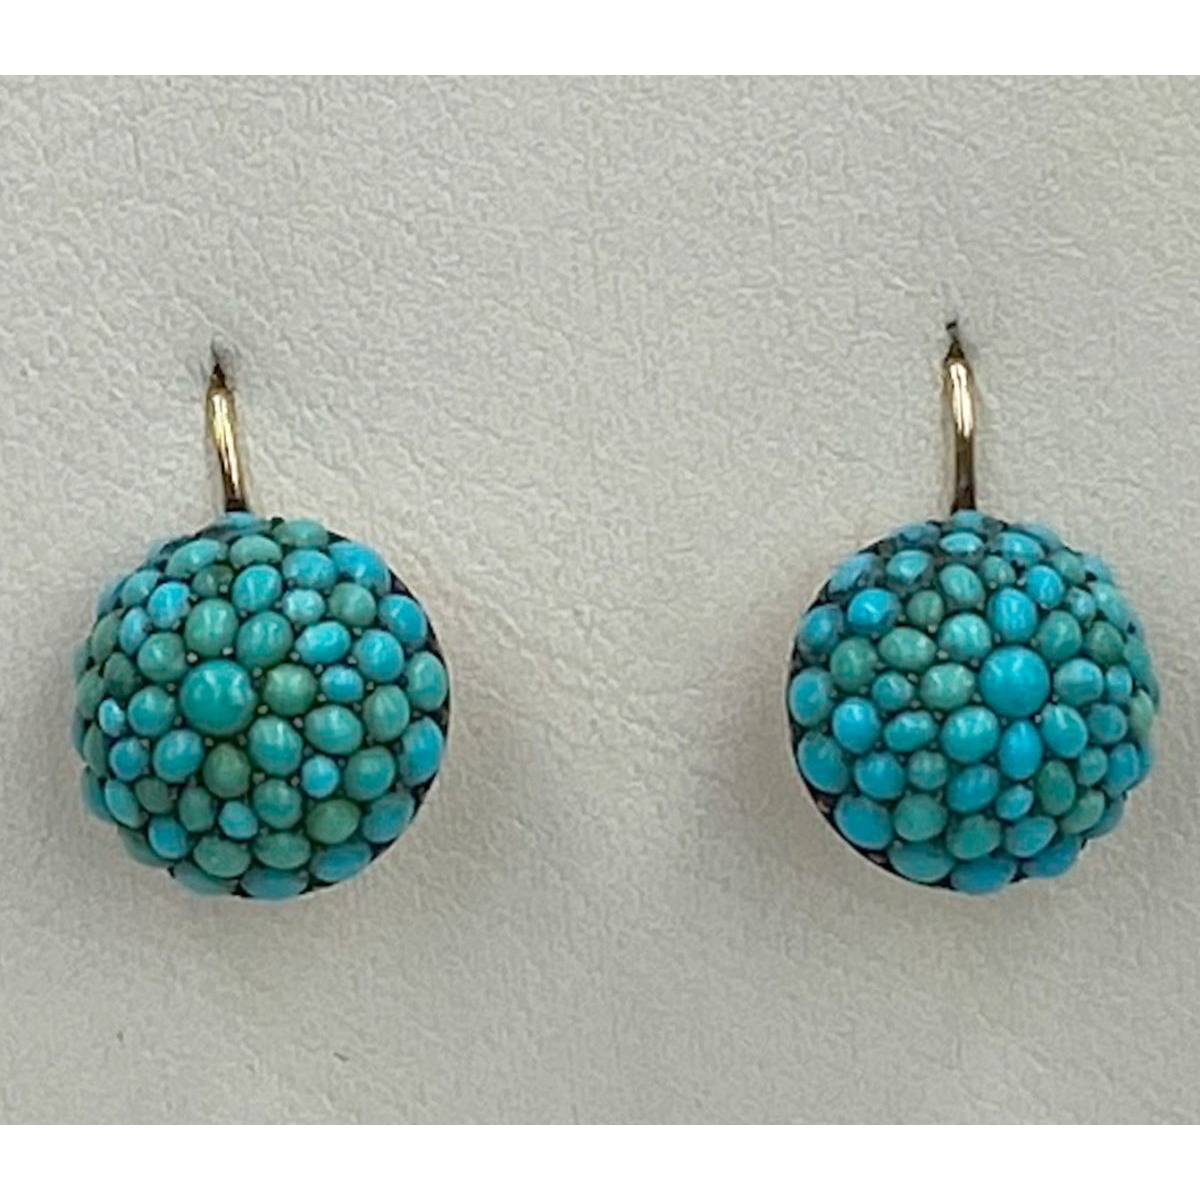 Outstanding Brilliant Persian Turquoise Dome Drop Antique English Gold Earrings